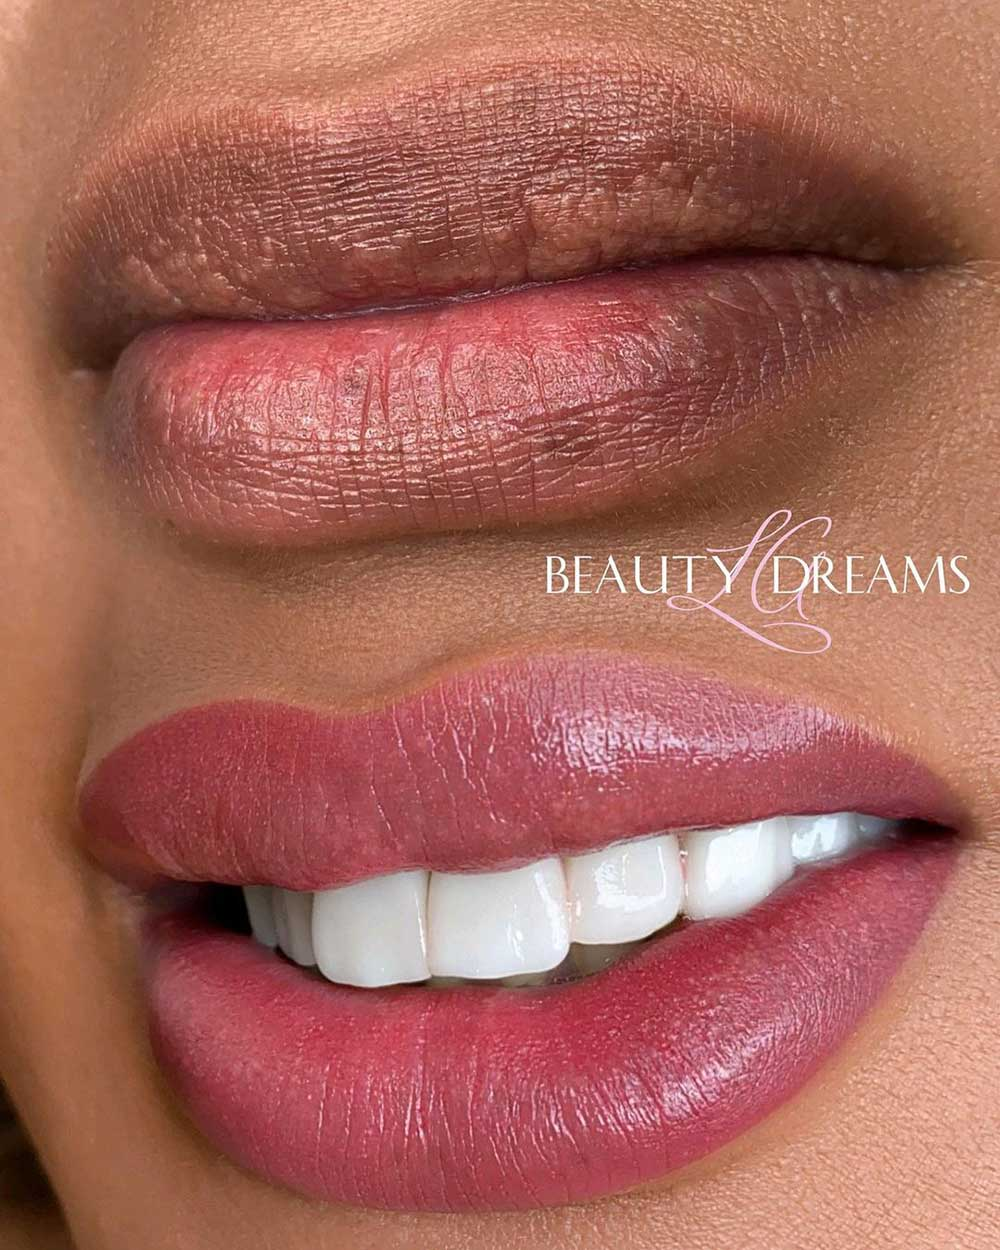 For most people, lip tattoos last about 2 years without additional touch ups.